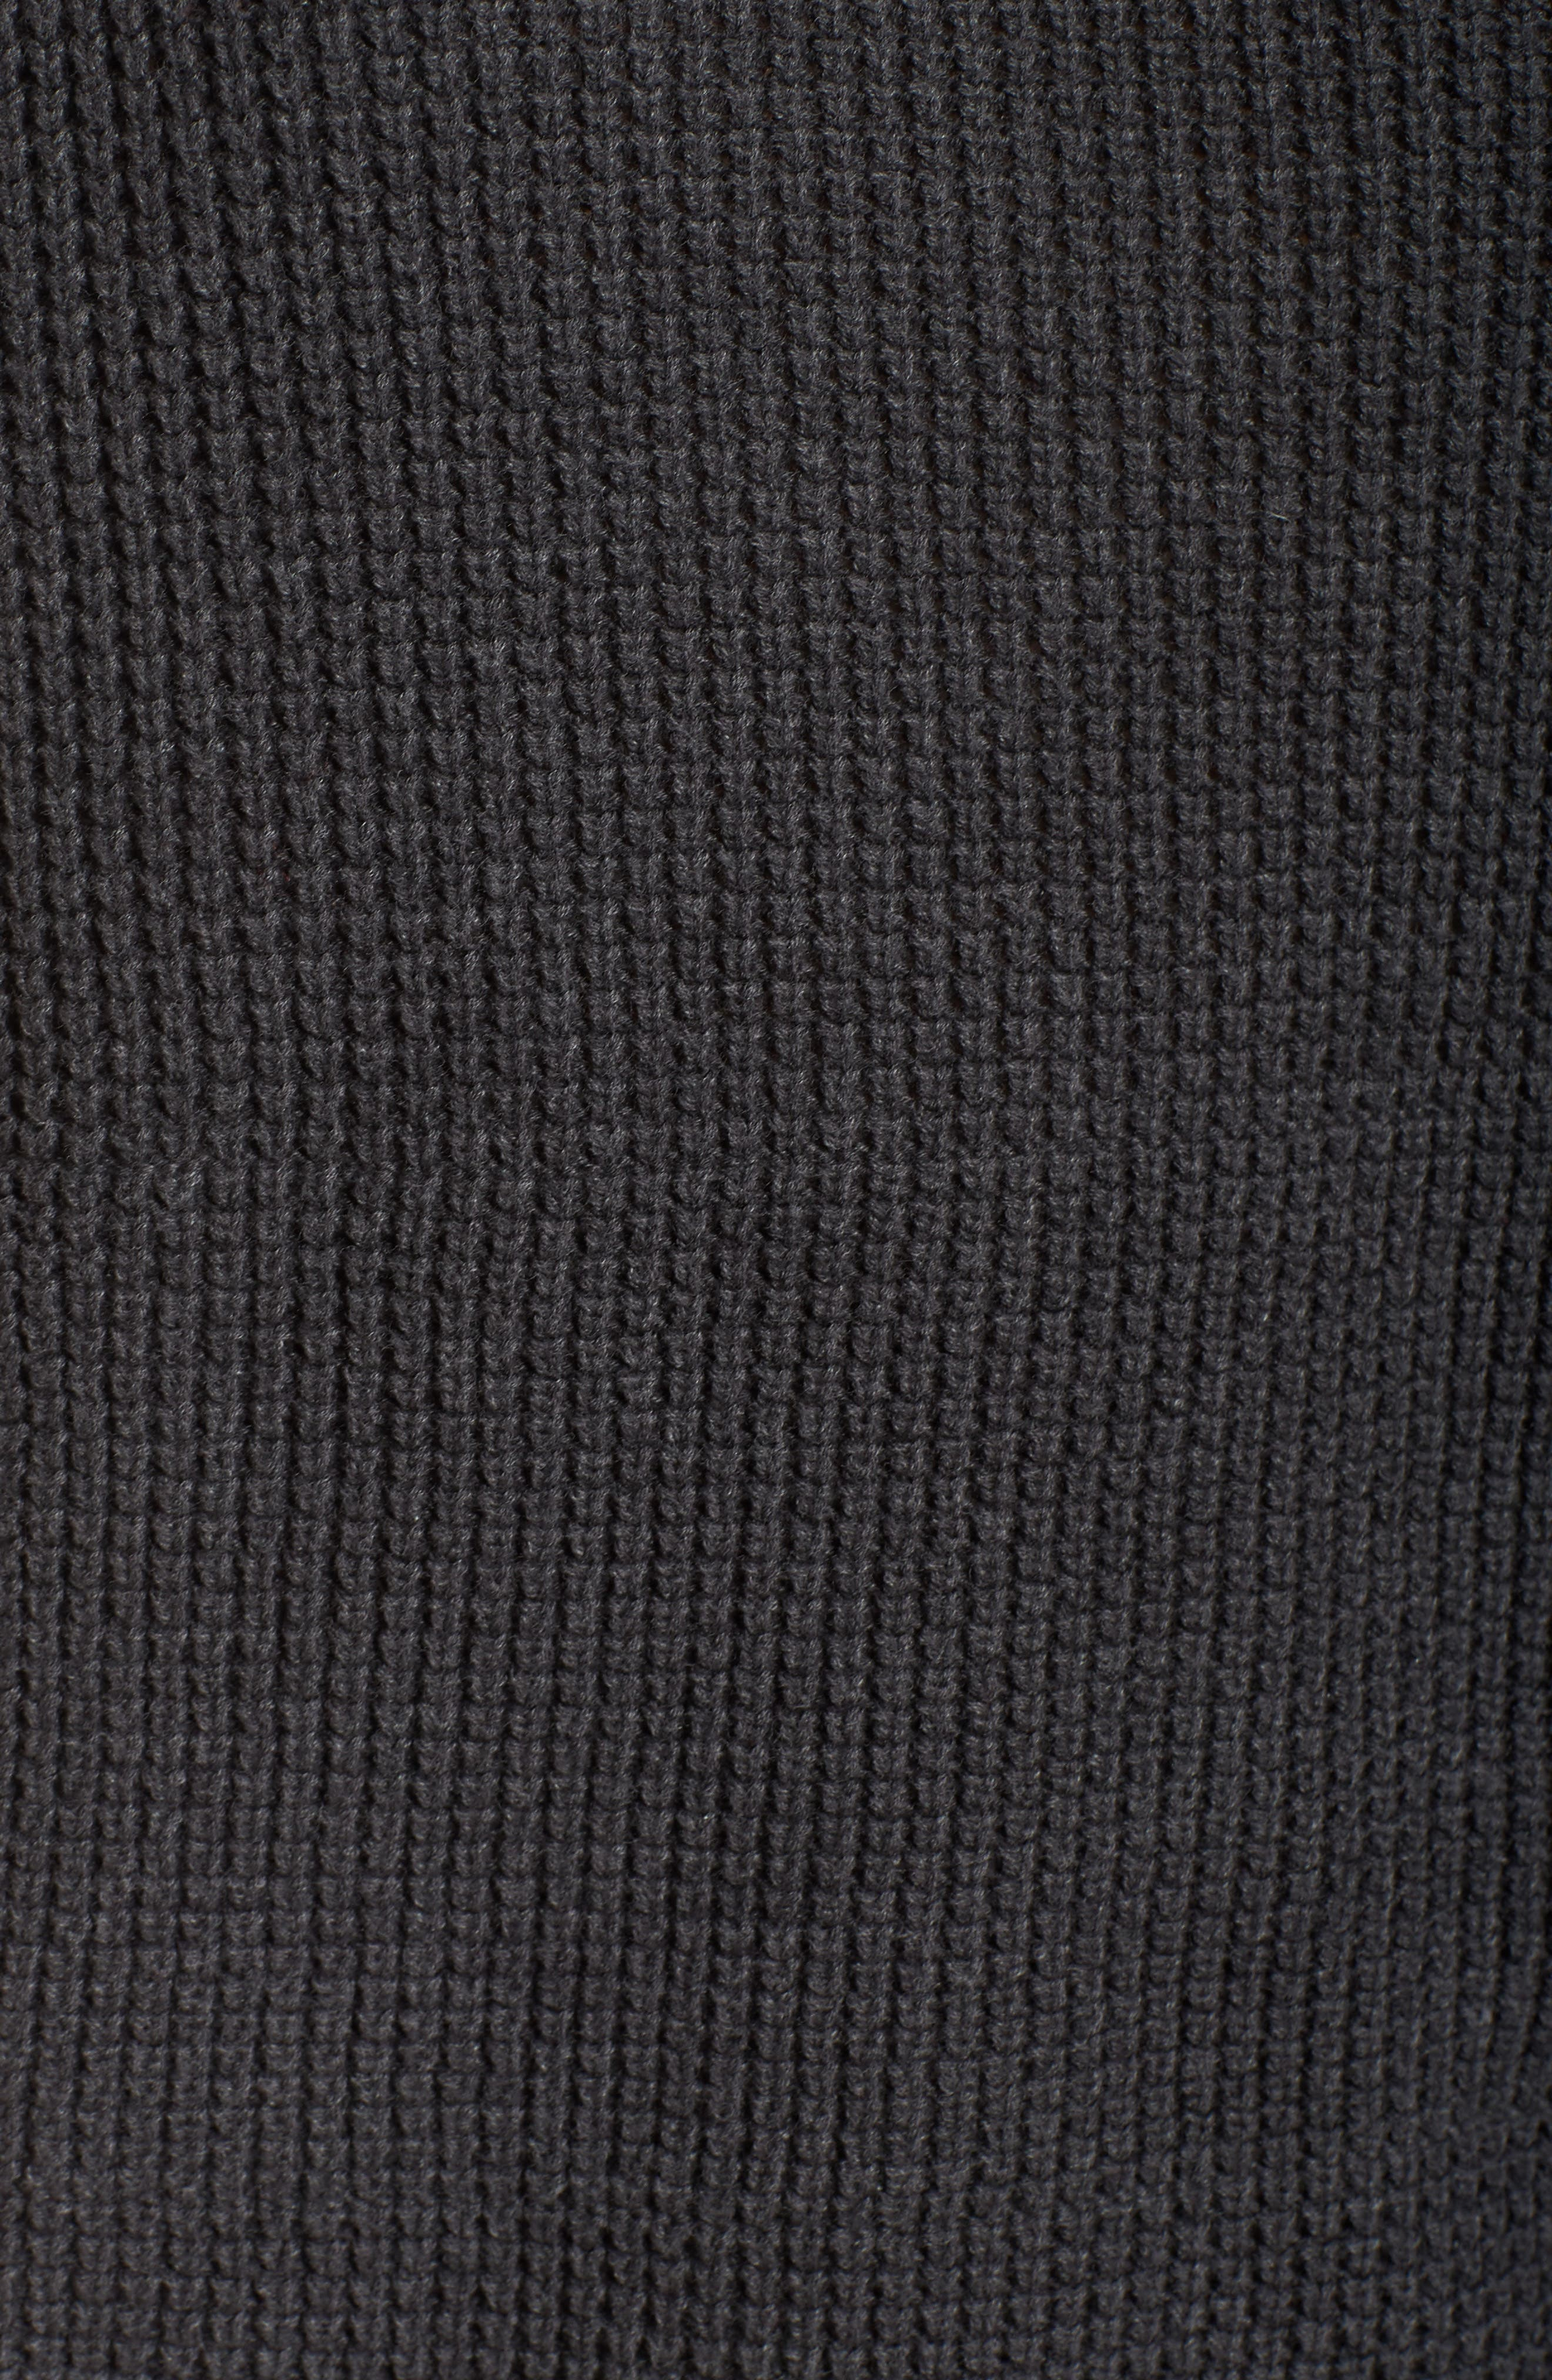 'Selby' Turtleneck Cotton Knit Pullover,                             Alternate thumbnail 5, color,                             001